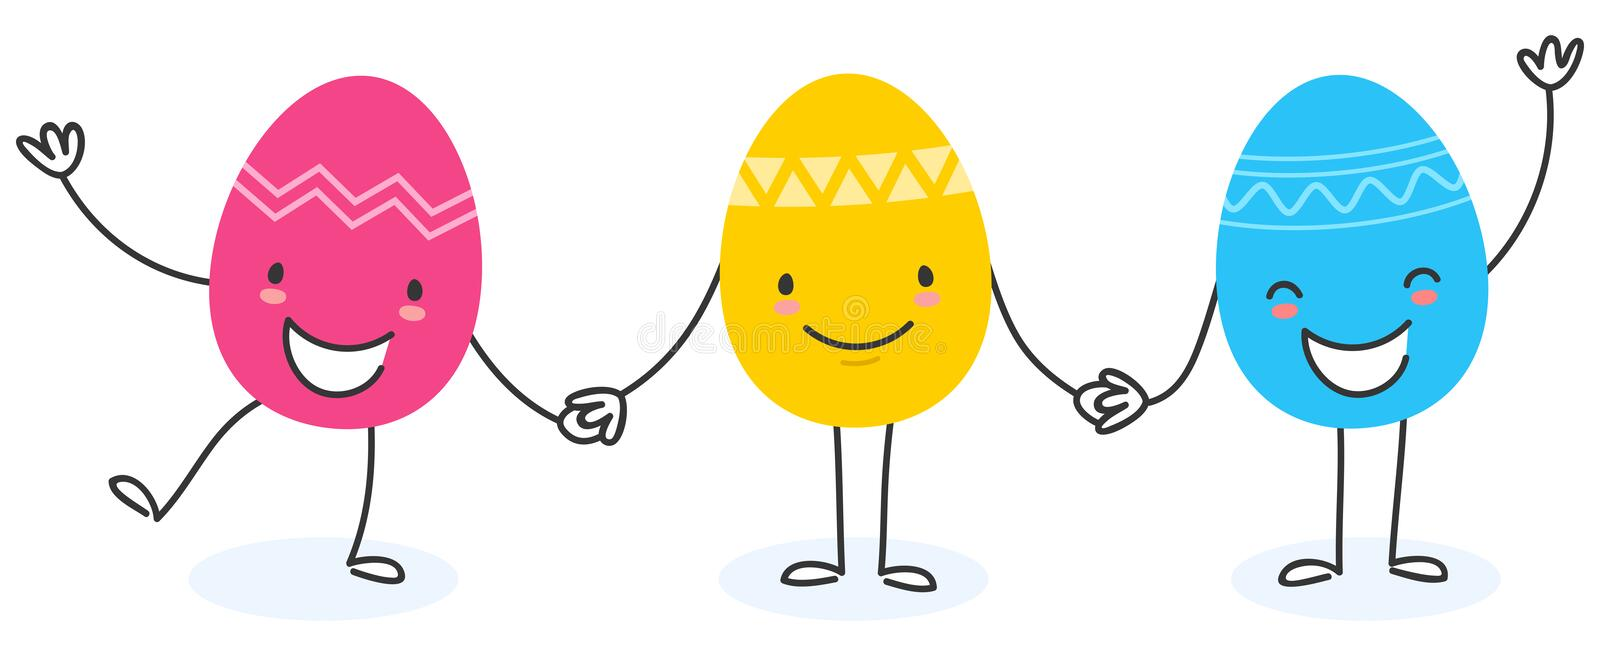 Simple vector illustration of three colorful flat design easter eggs, cartoon characters holding hands. Isolated on white background vector illustration